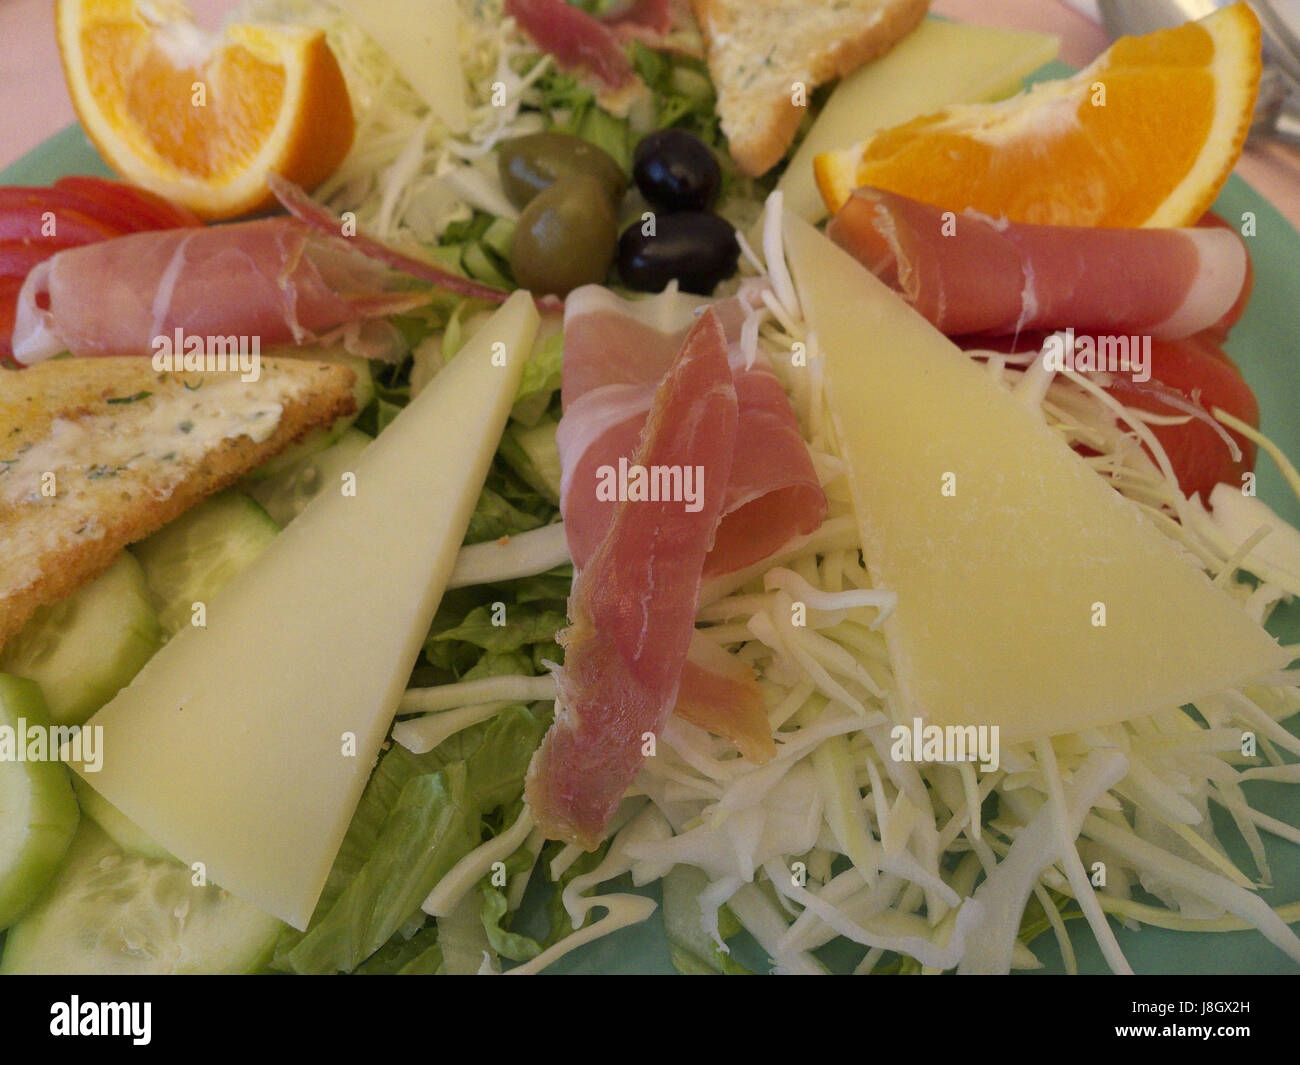 A culinary cheese and meats platter for lunch Stock Photo